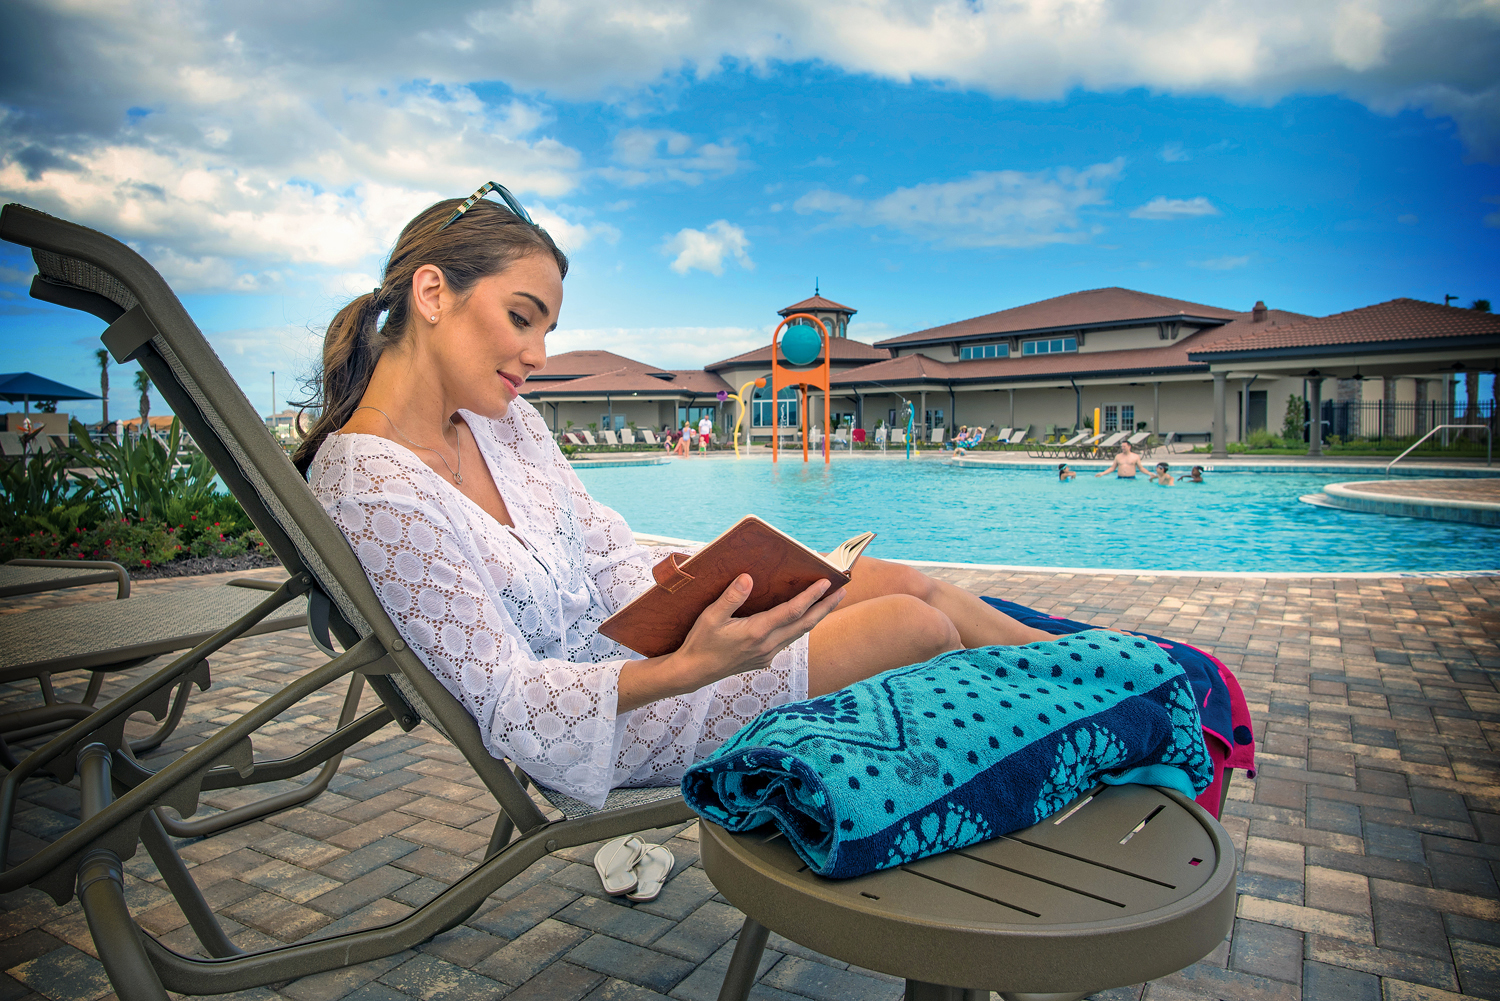 Woman reading on lounge chair next to family pool.